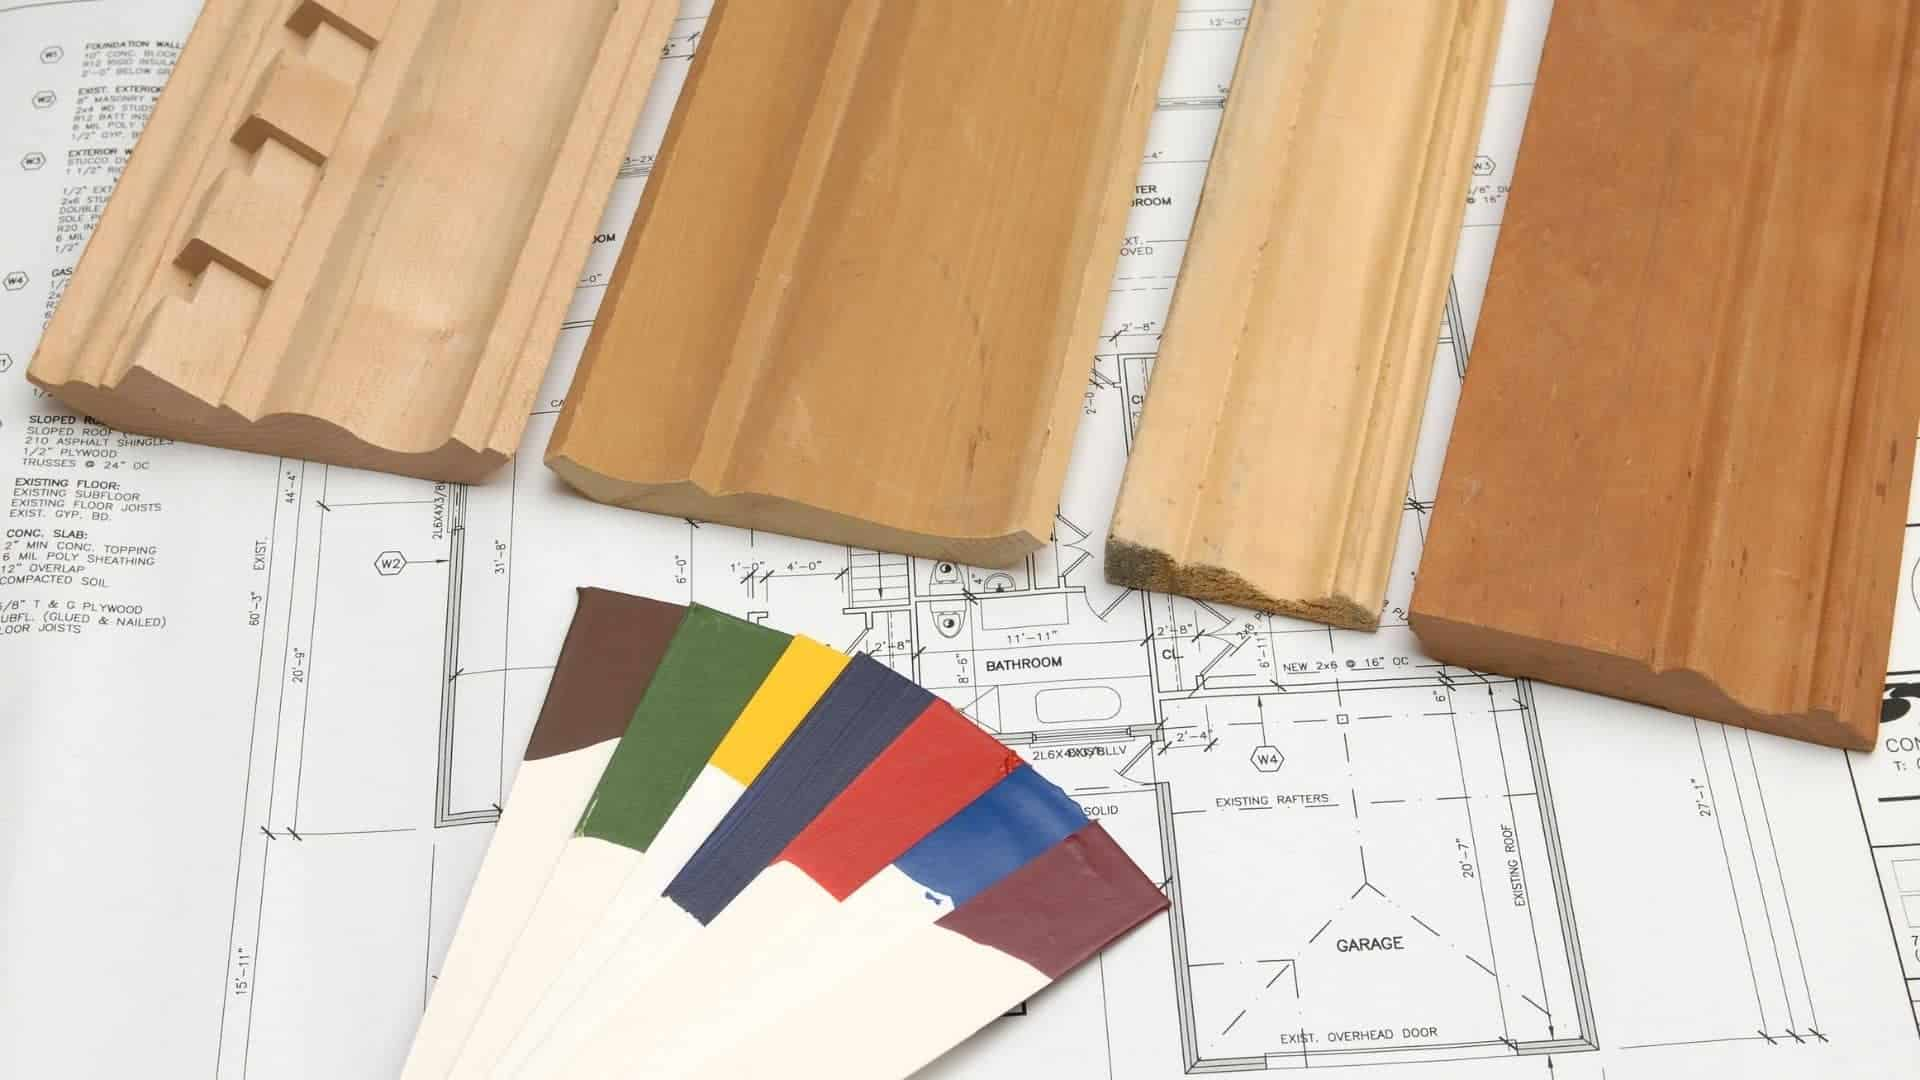 How To Paint Baseboards Before Installing